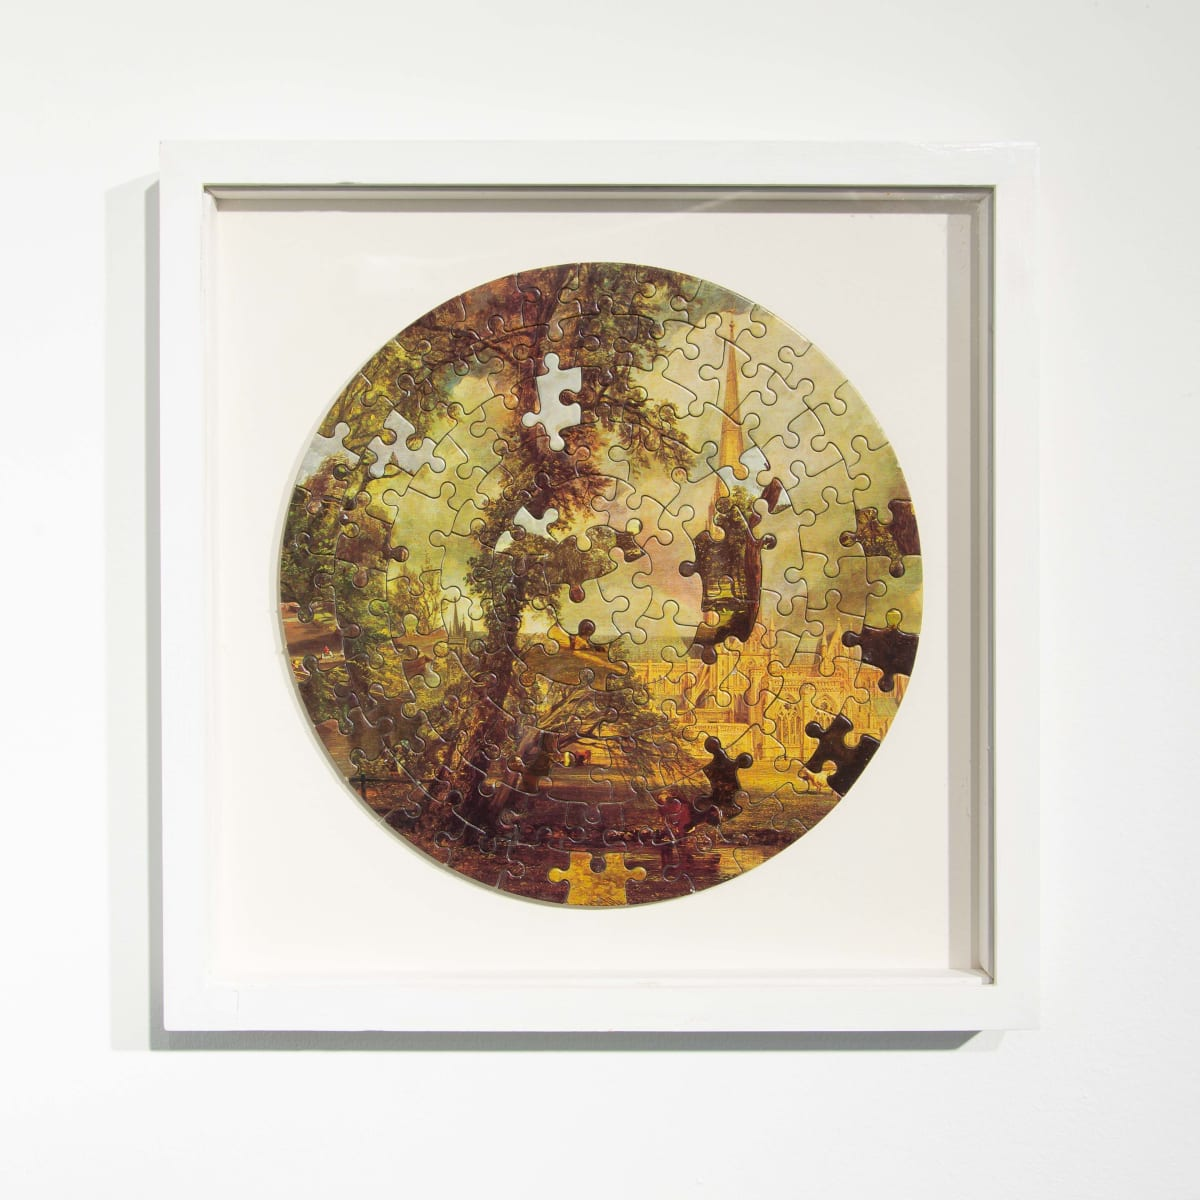 Darren Coffield Constable [III], 2014 Lithograph on die-cut board 22.5 cm (d) 35.5 x 35.5 cm (framed) Edition of 2